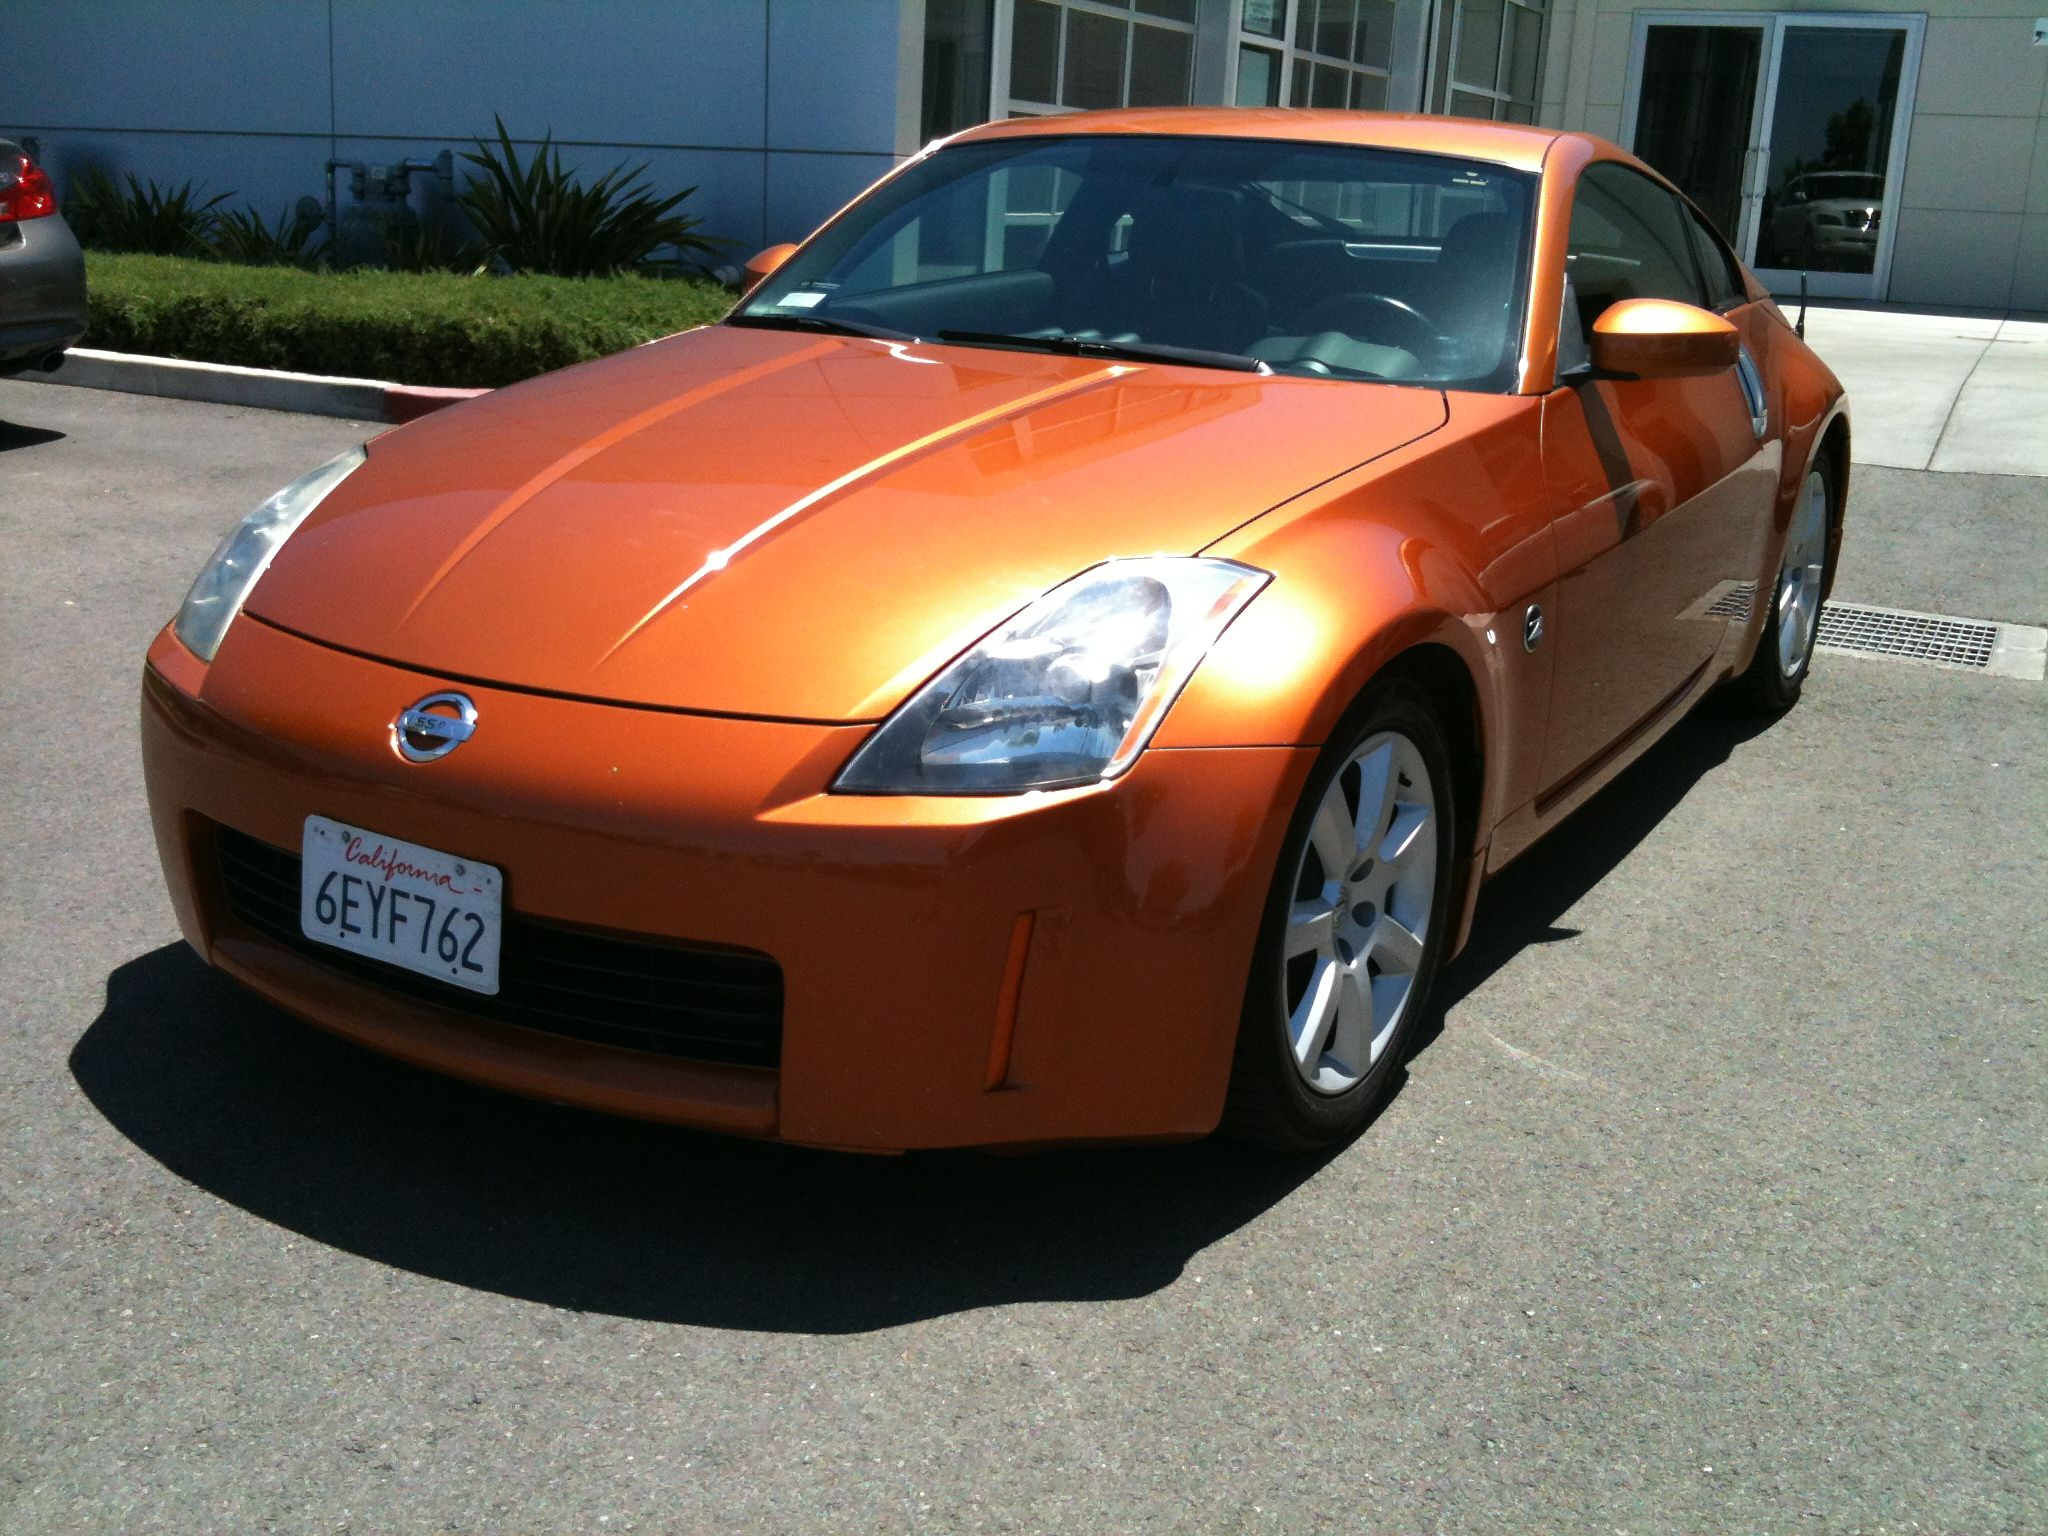 2003 Nissan 350Z Touring Edition  Mobility  Pinterest  Nissan